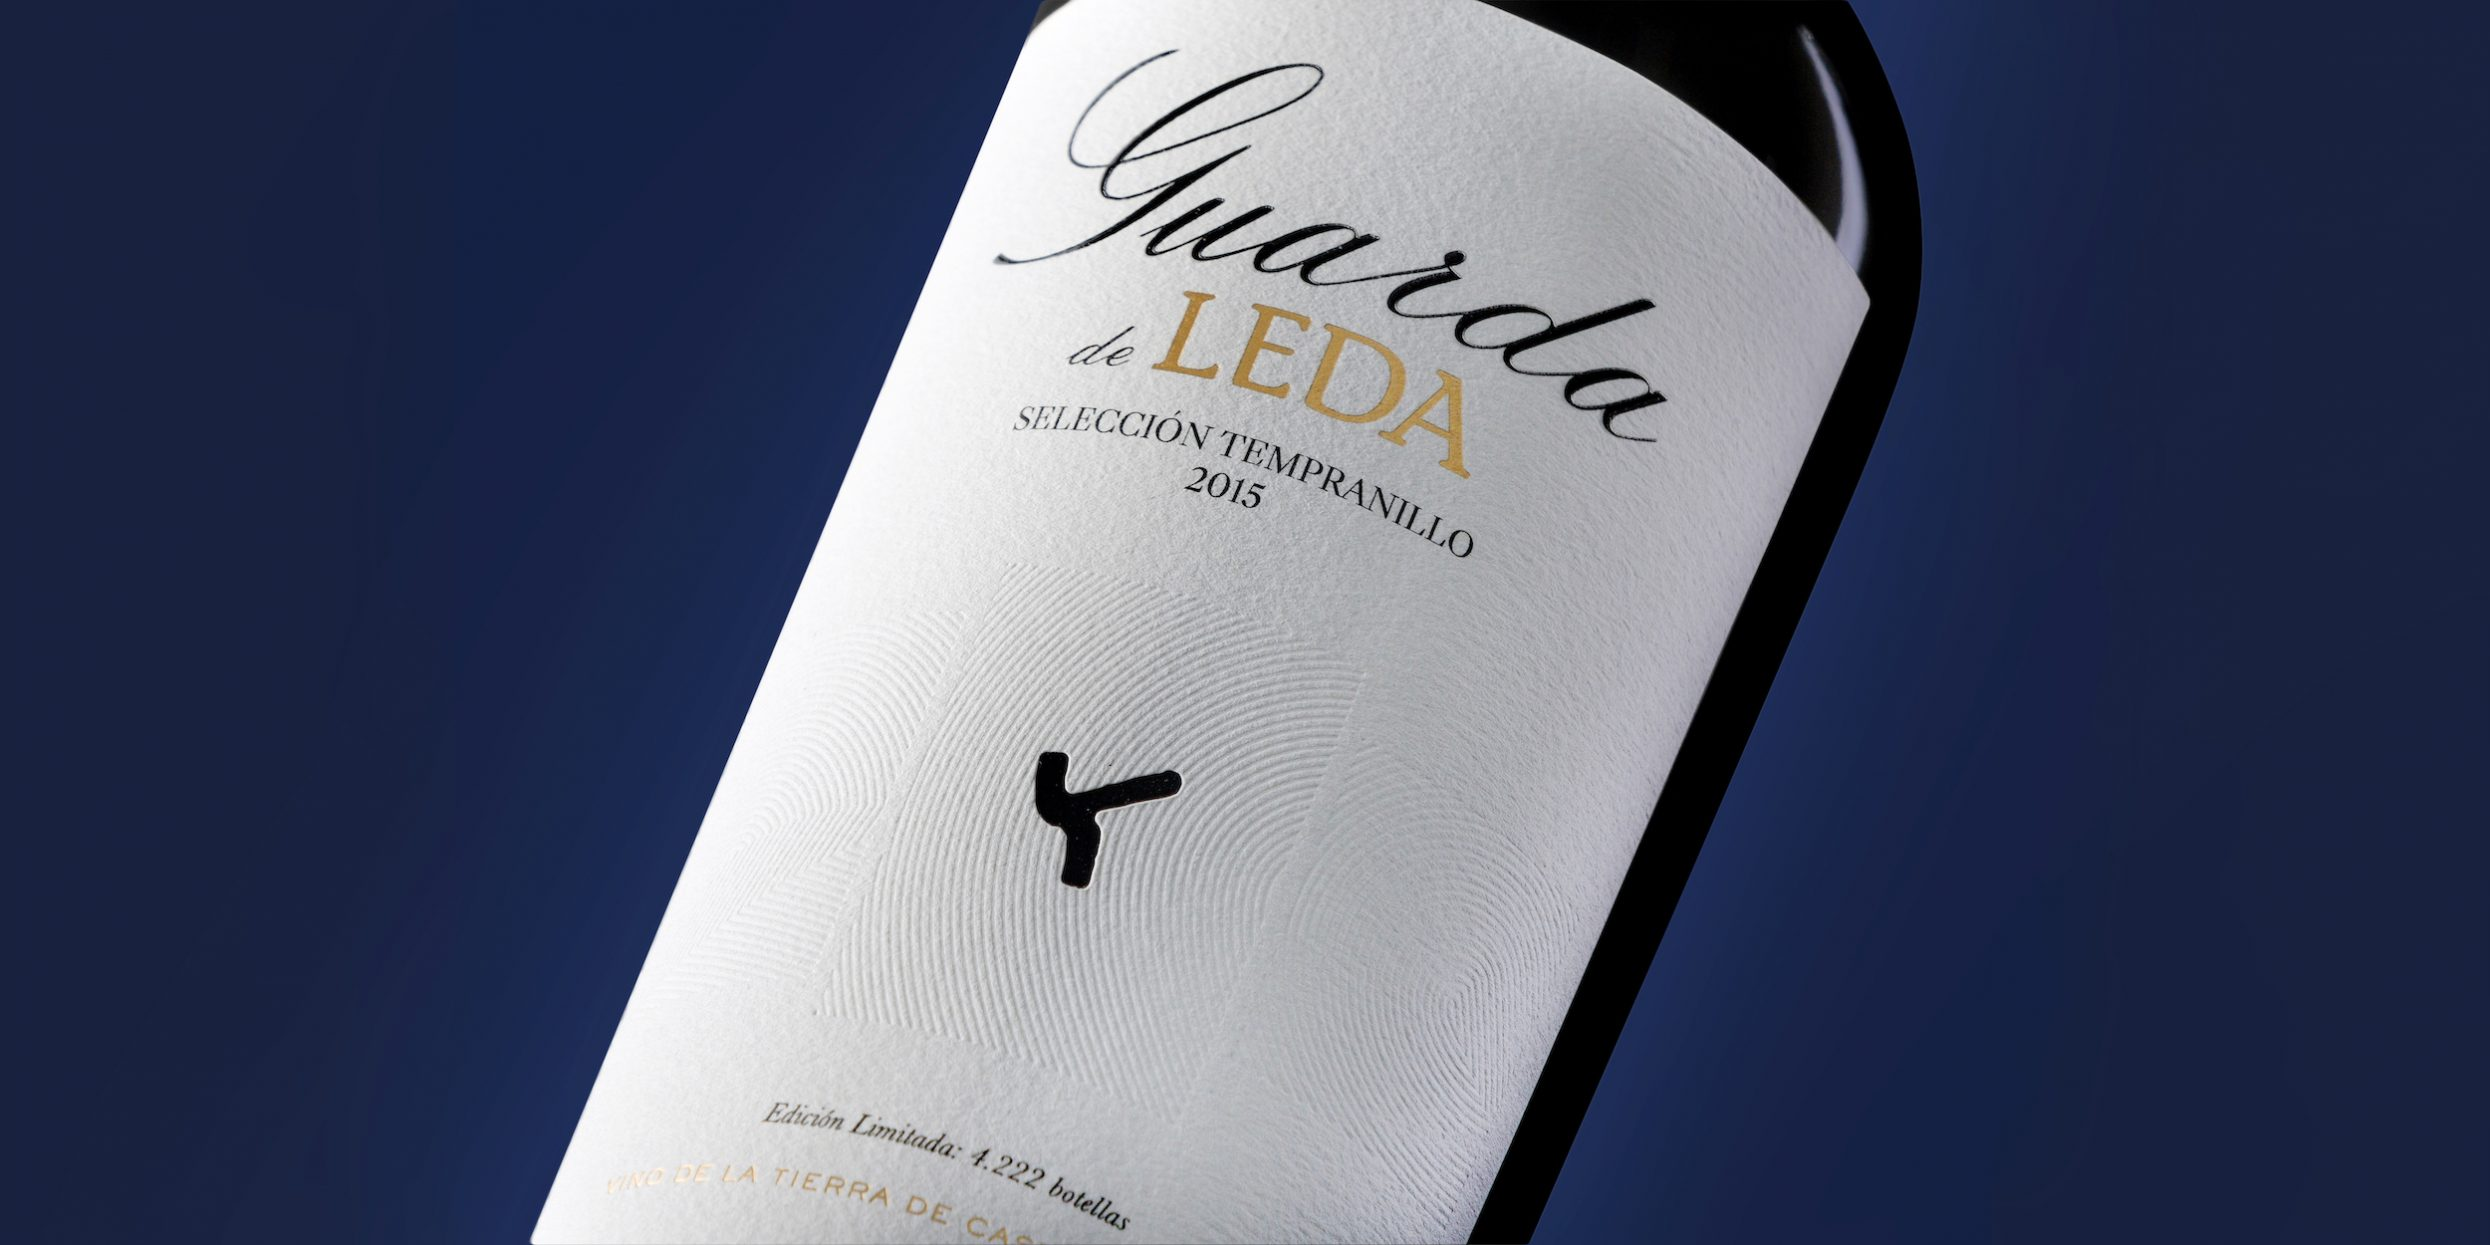 Guarda de Leda - packaging https://www.bodegasleda.com/